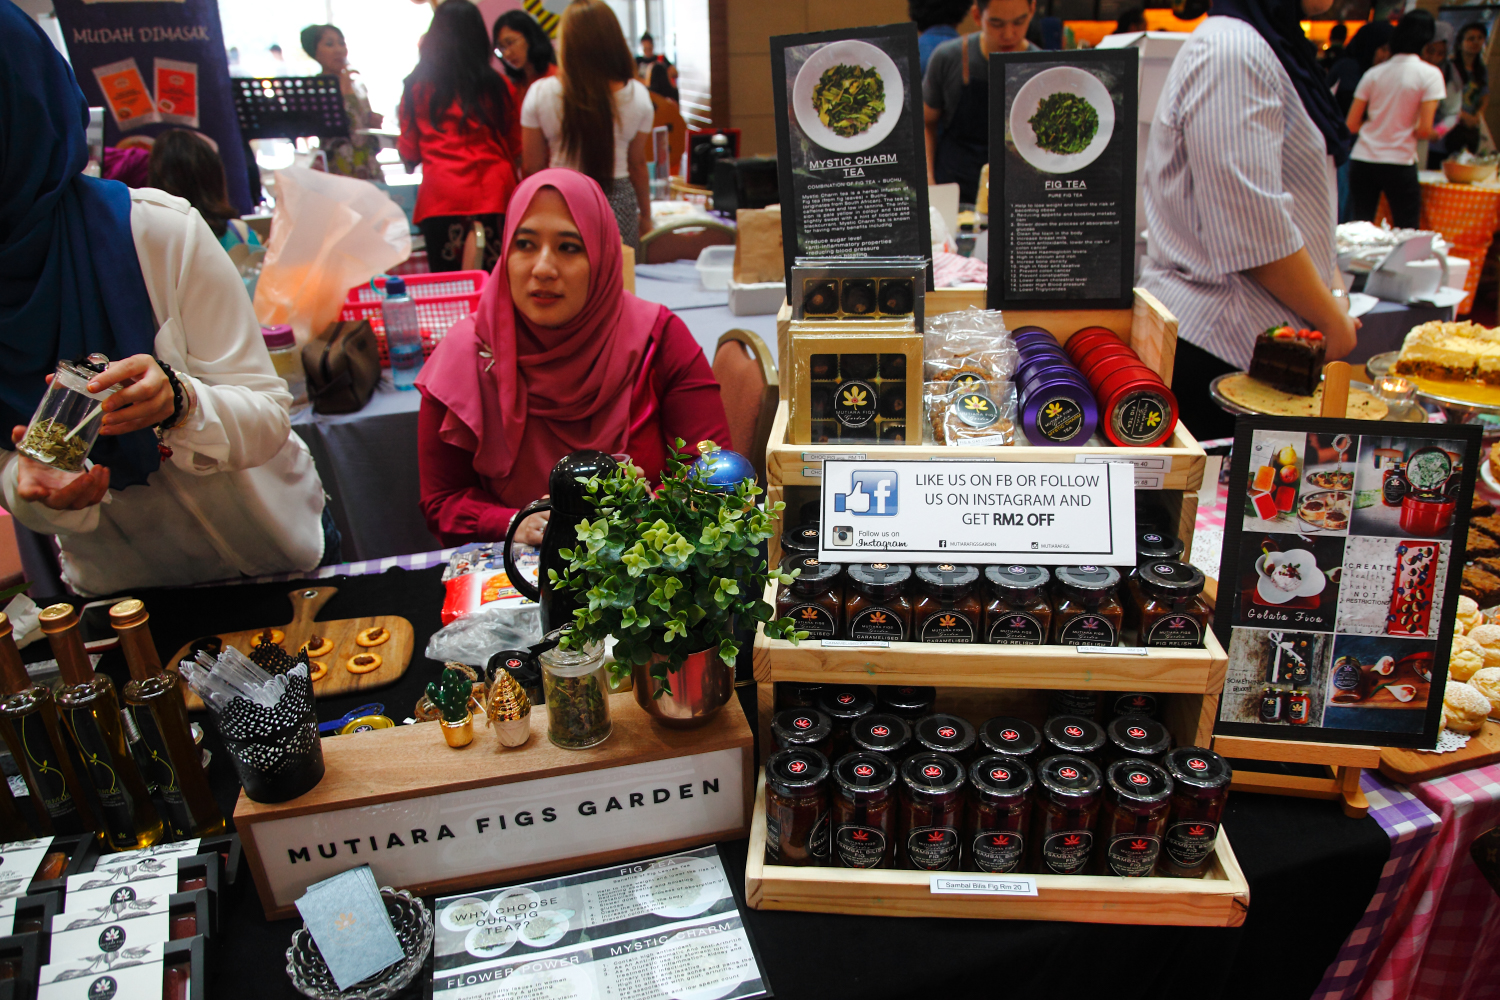 Mutiara Figs Garden Maple Food Market